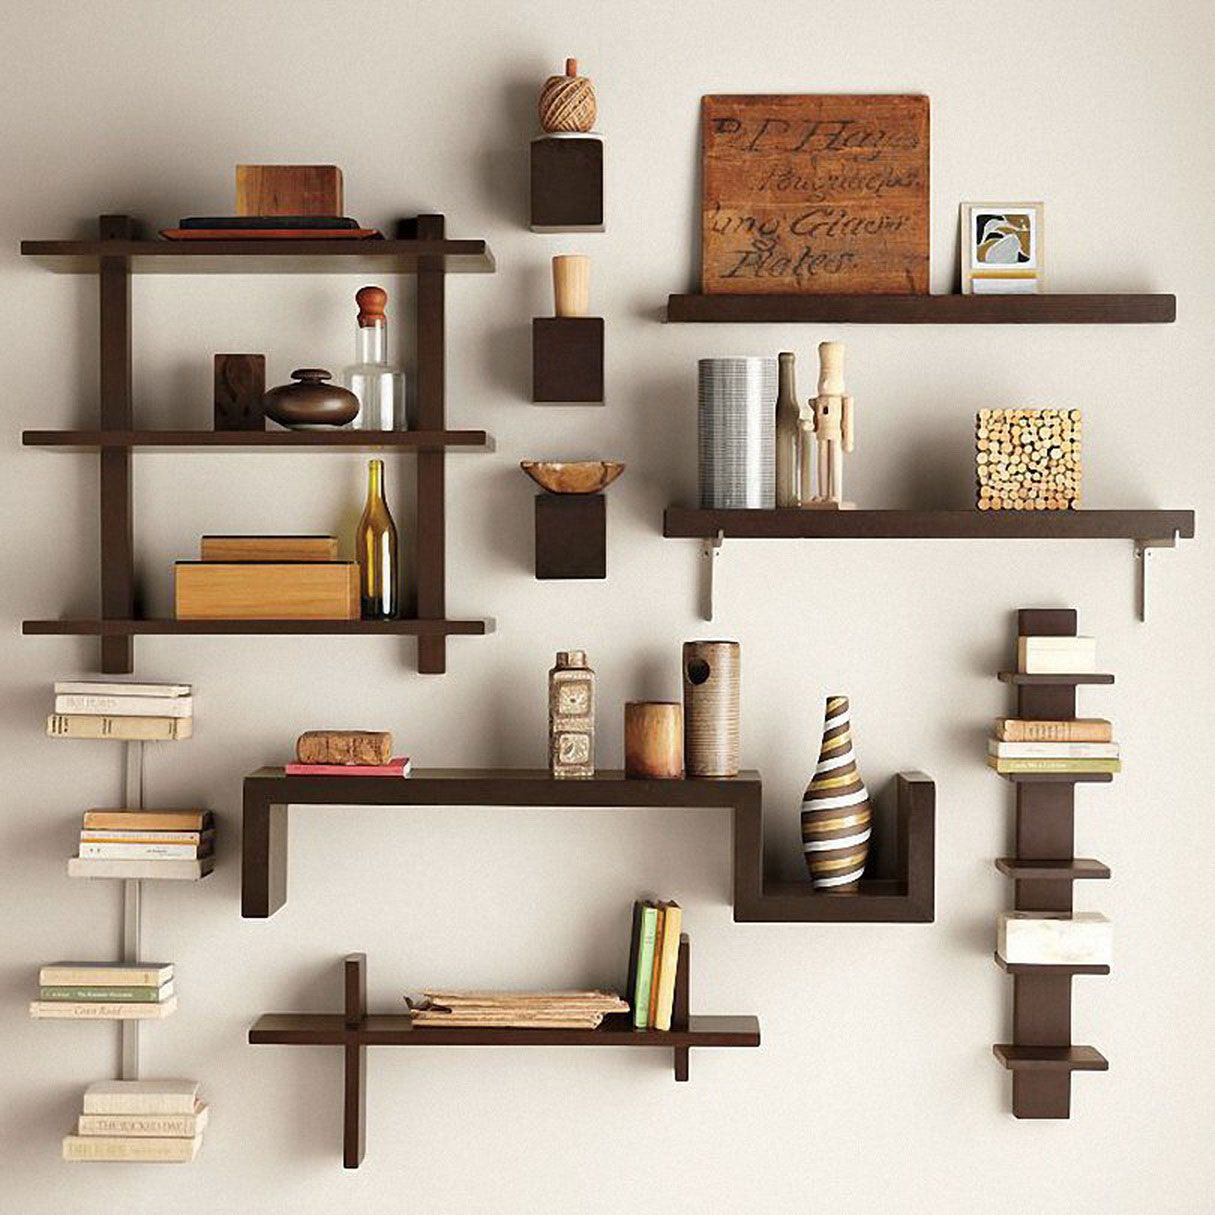 Wall Mounted Shelves Floating Shelves Living Room Wall Shelves Design Wall Shelf Decor